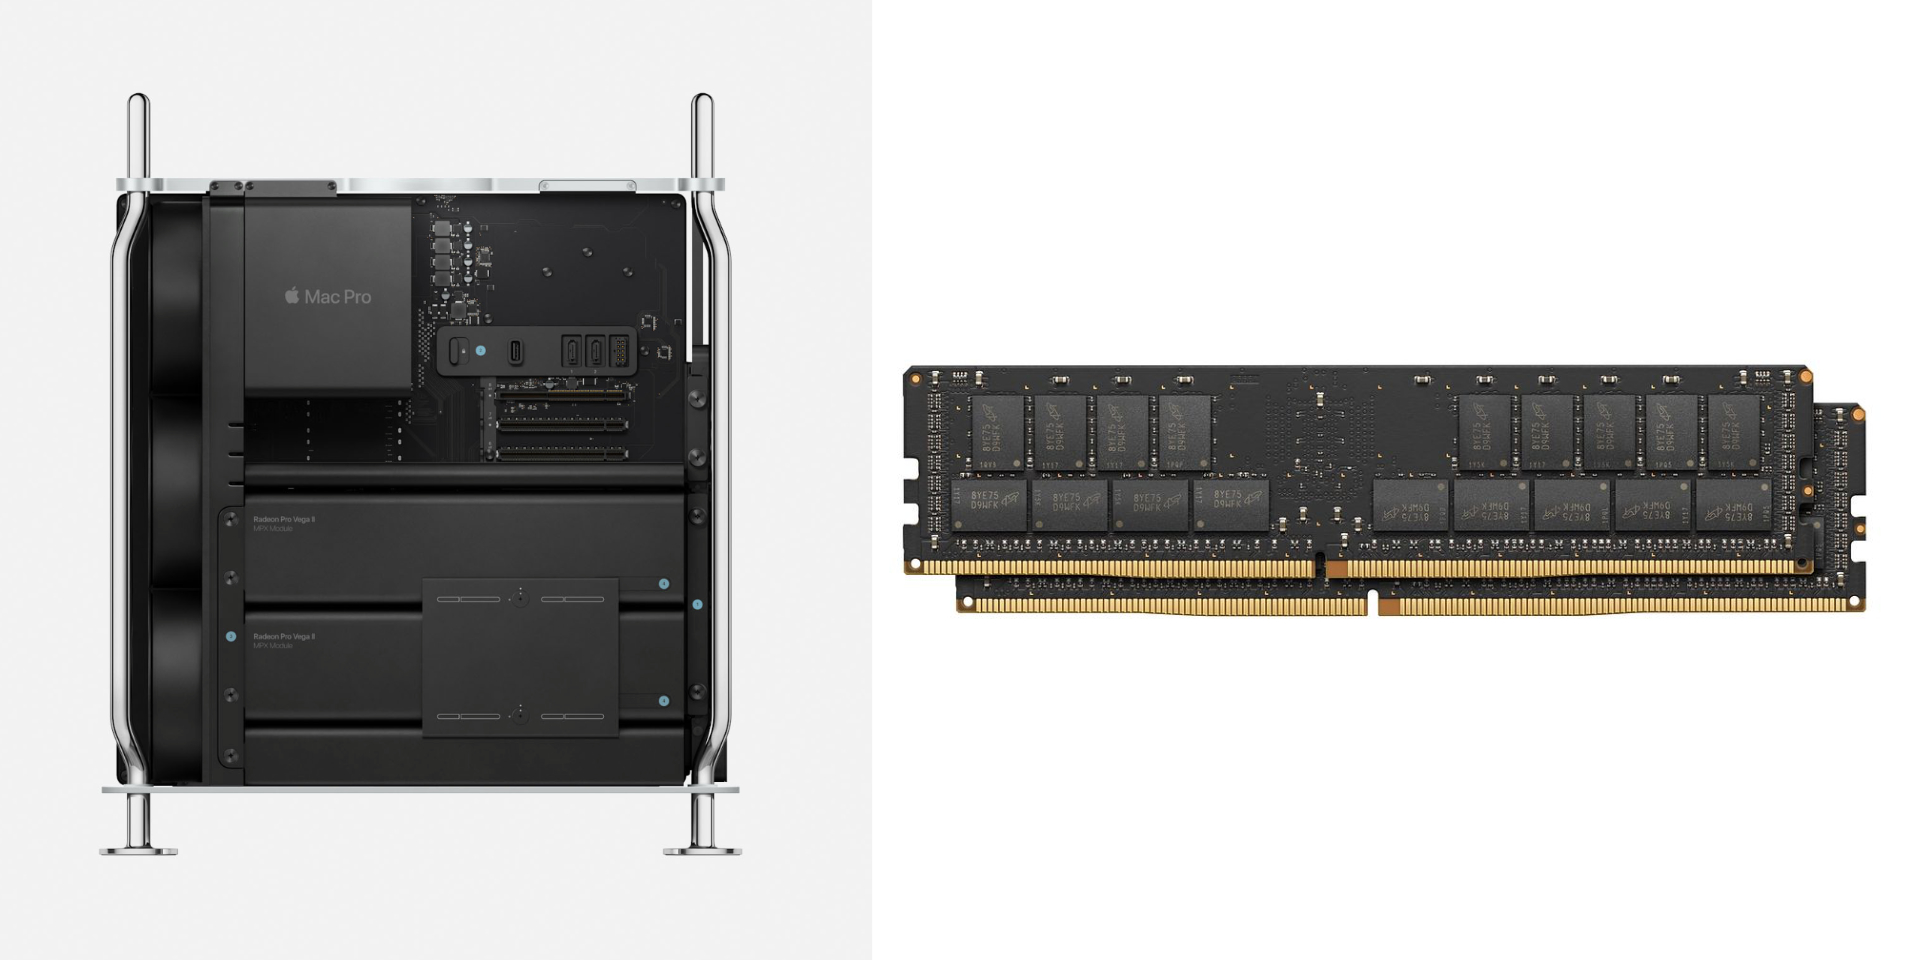 You may be able to save thousands of dollars on upgrading Mac Pro RAM